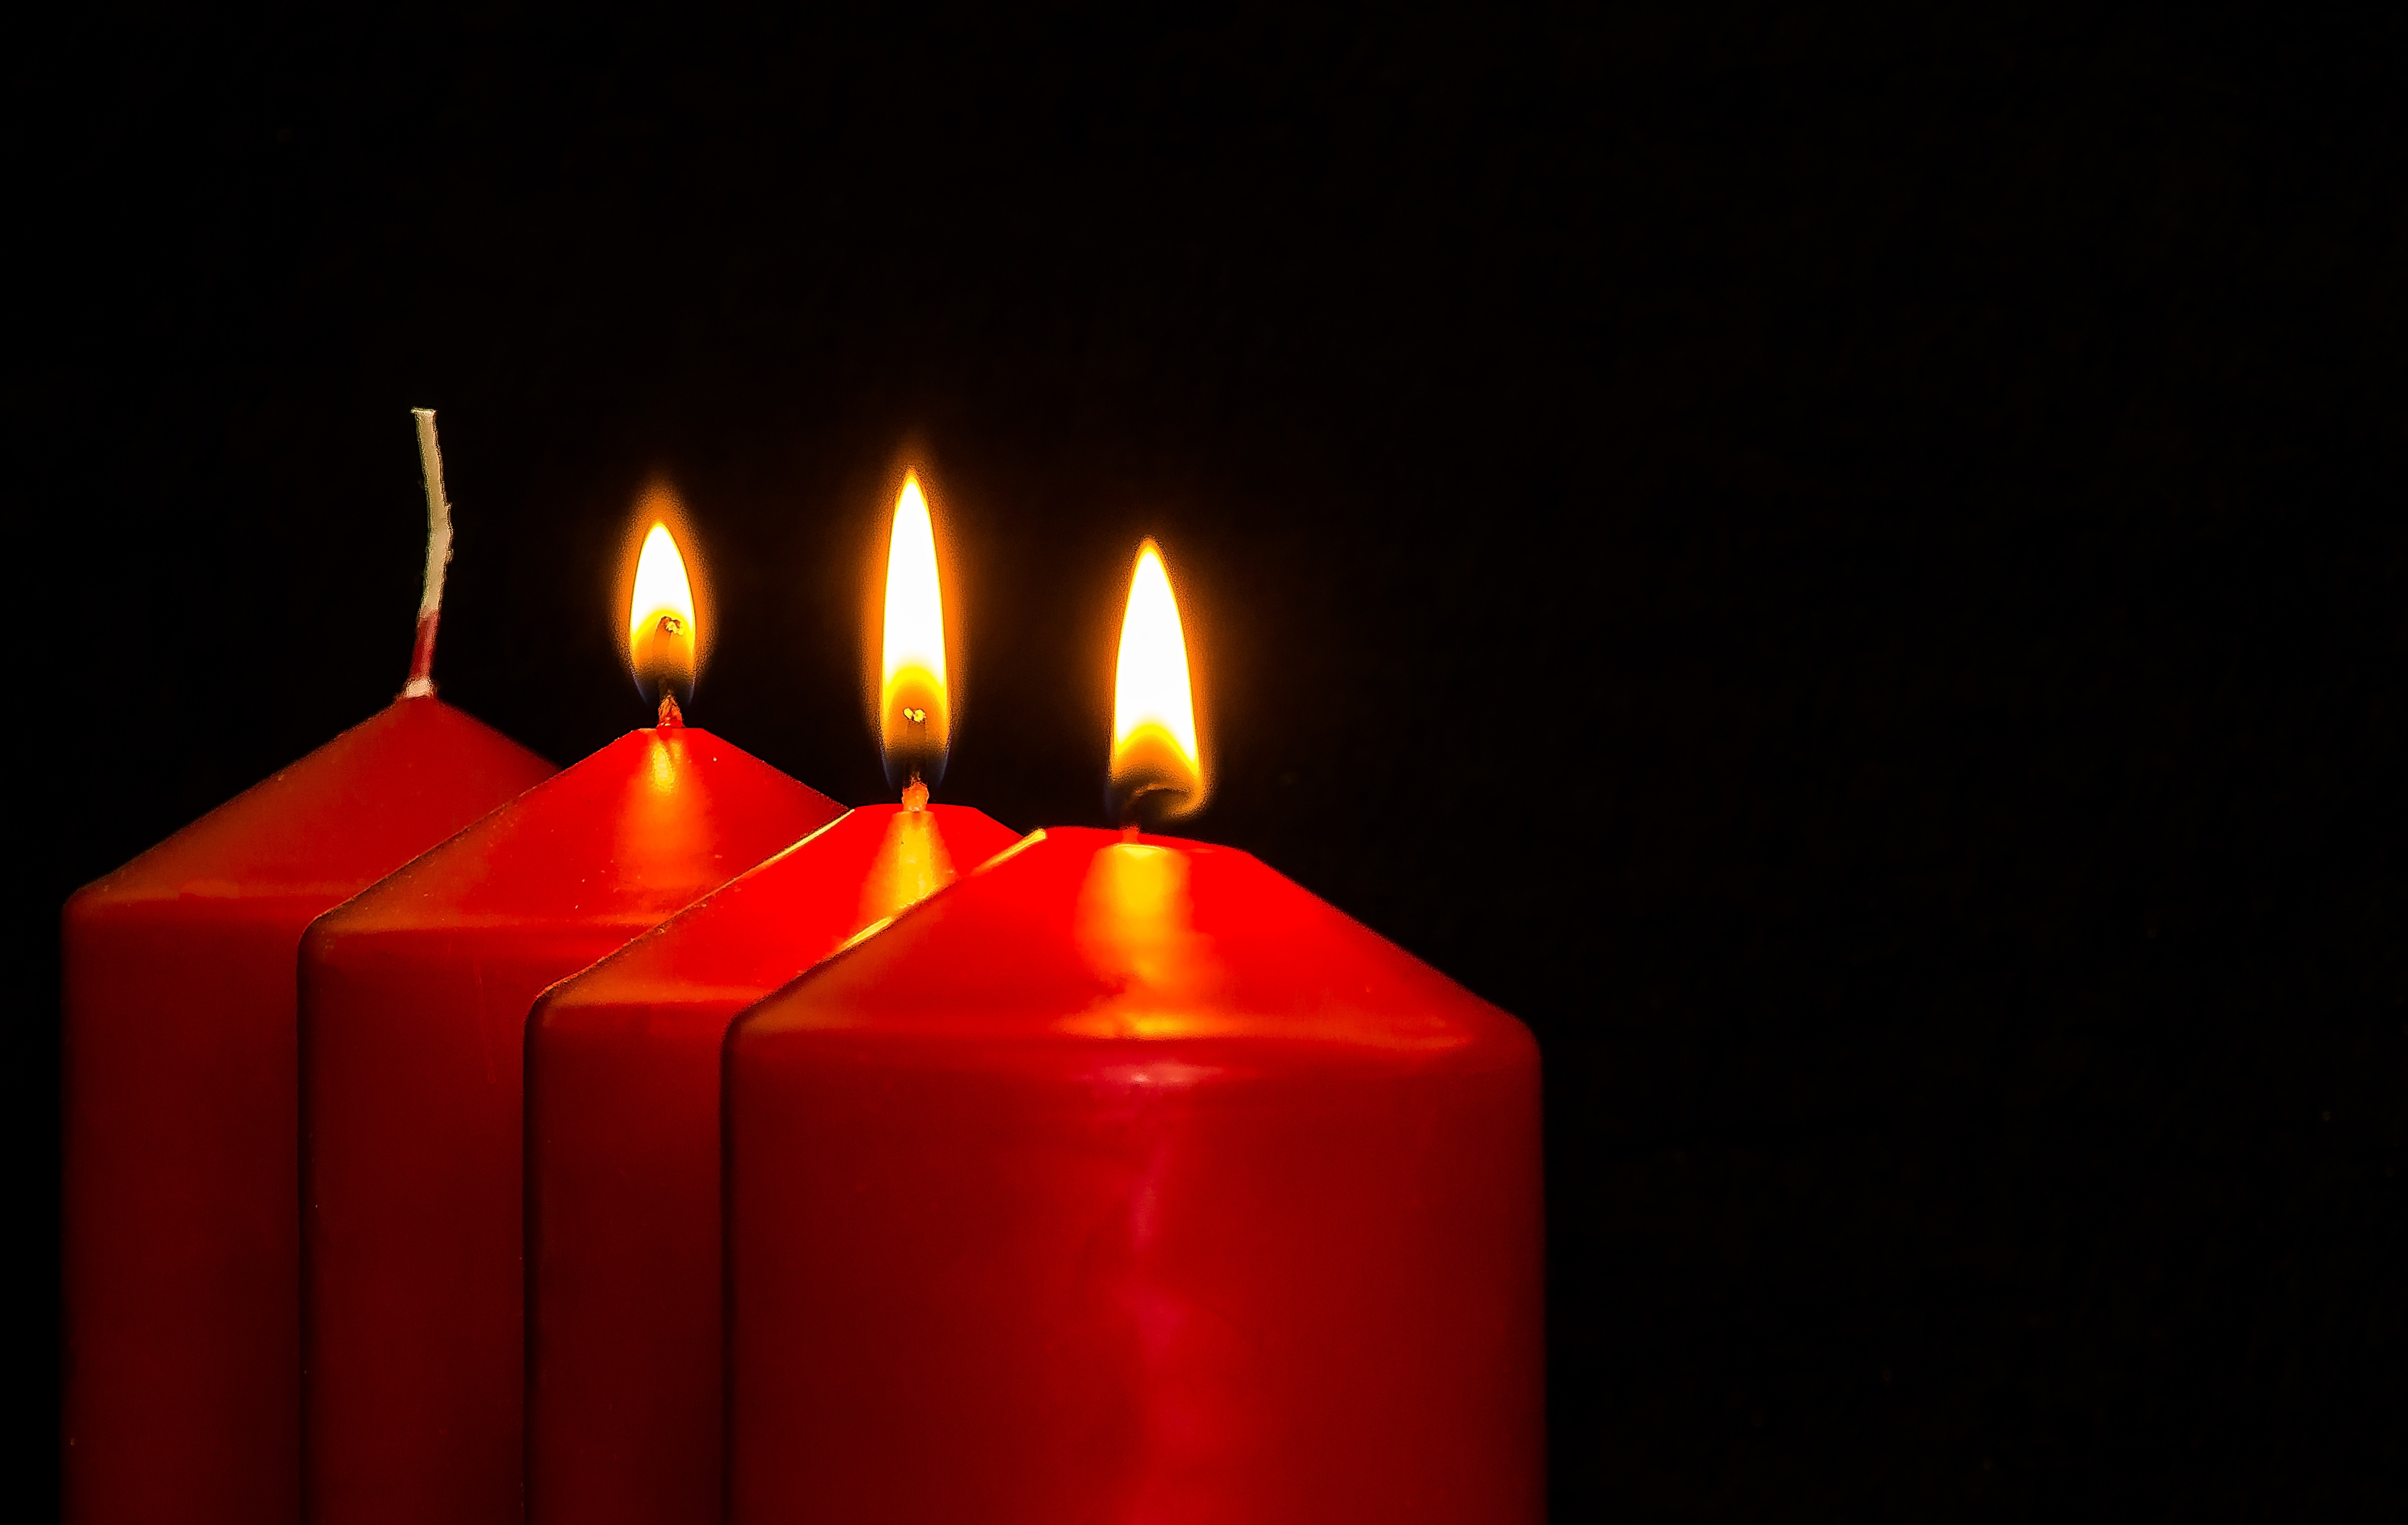 free stock photo of 3 advent advent advent candles. Black Bedroom Furniture Sets. Home Design Ideas